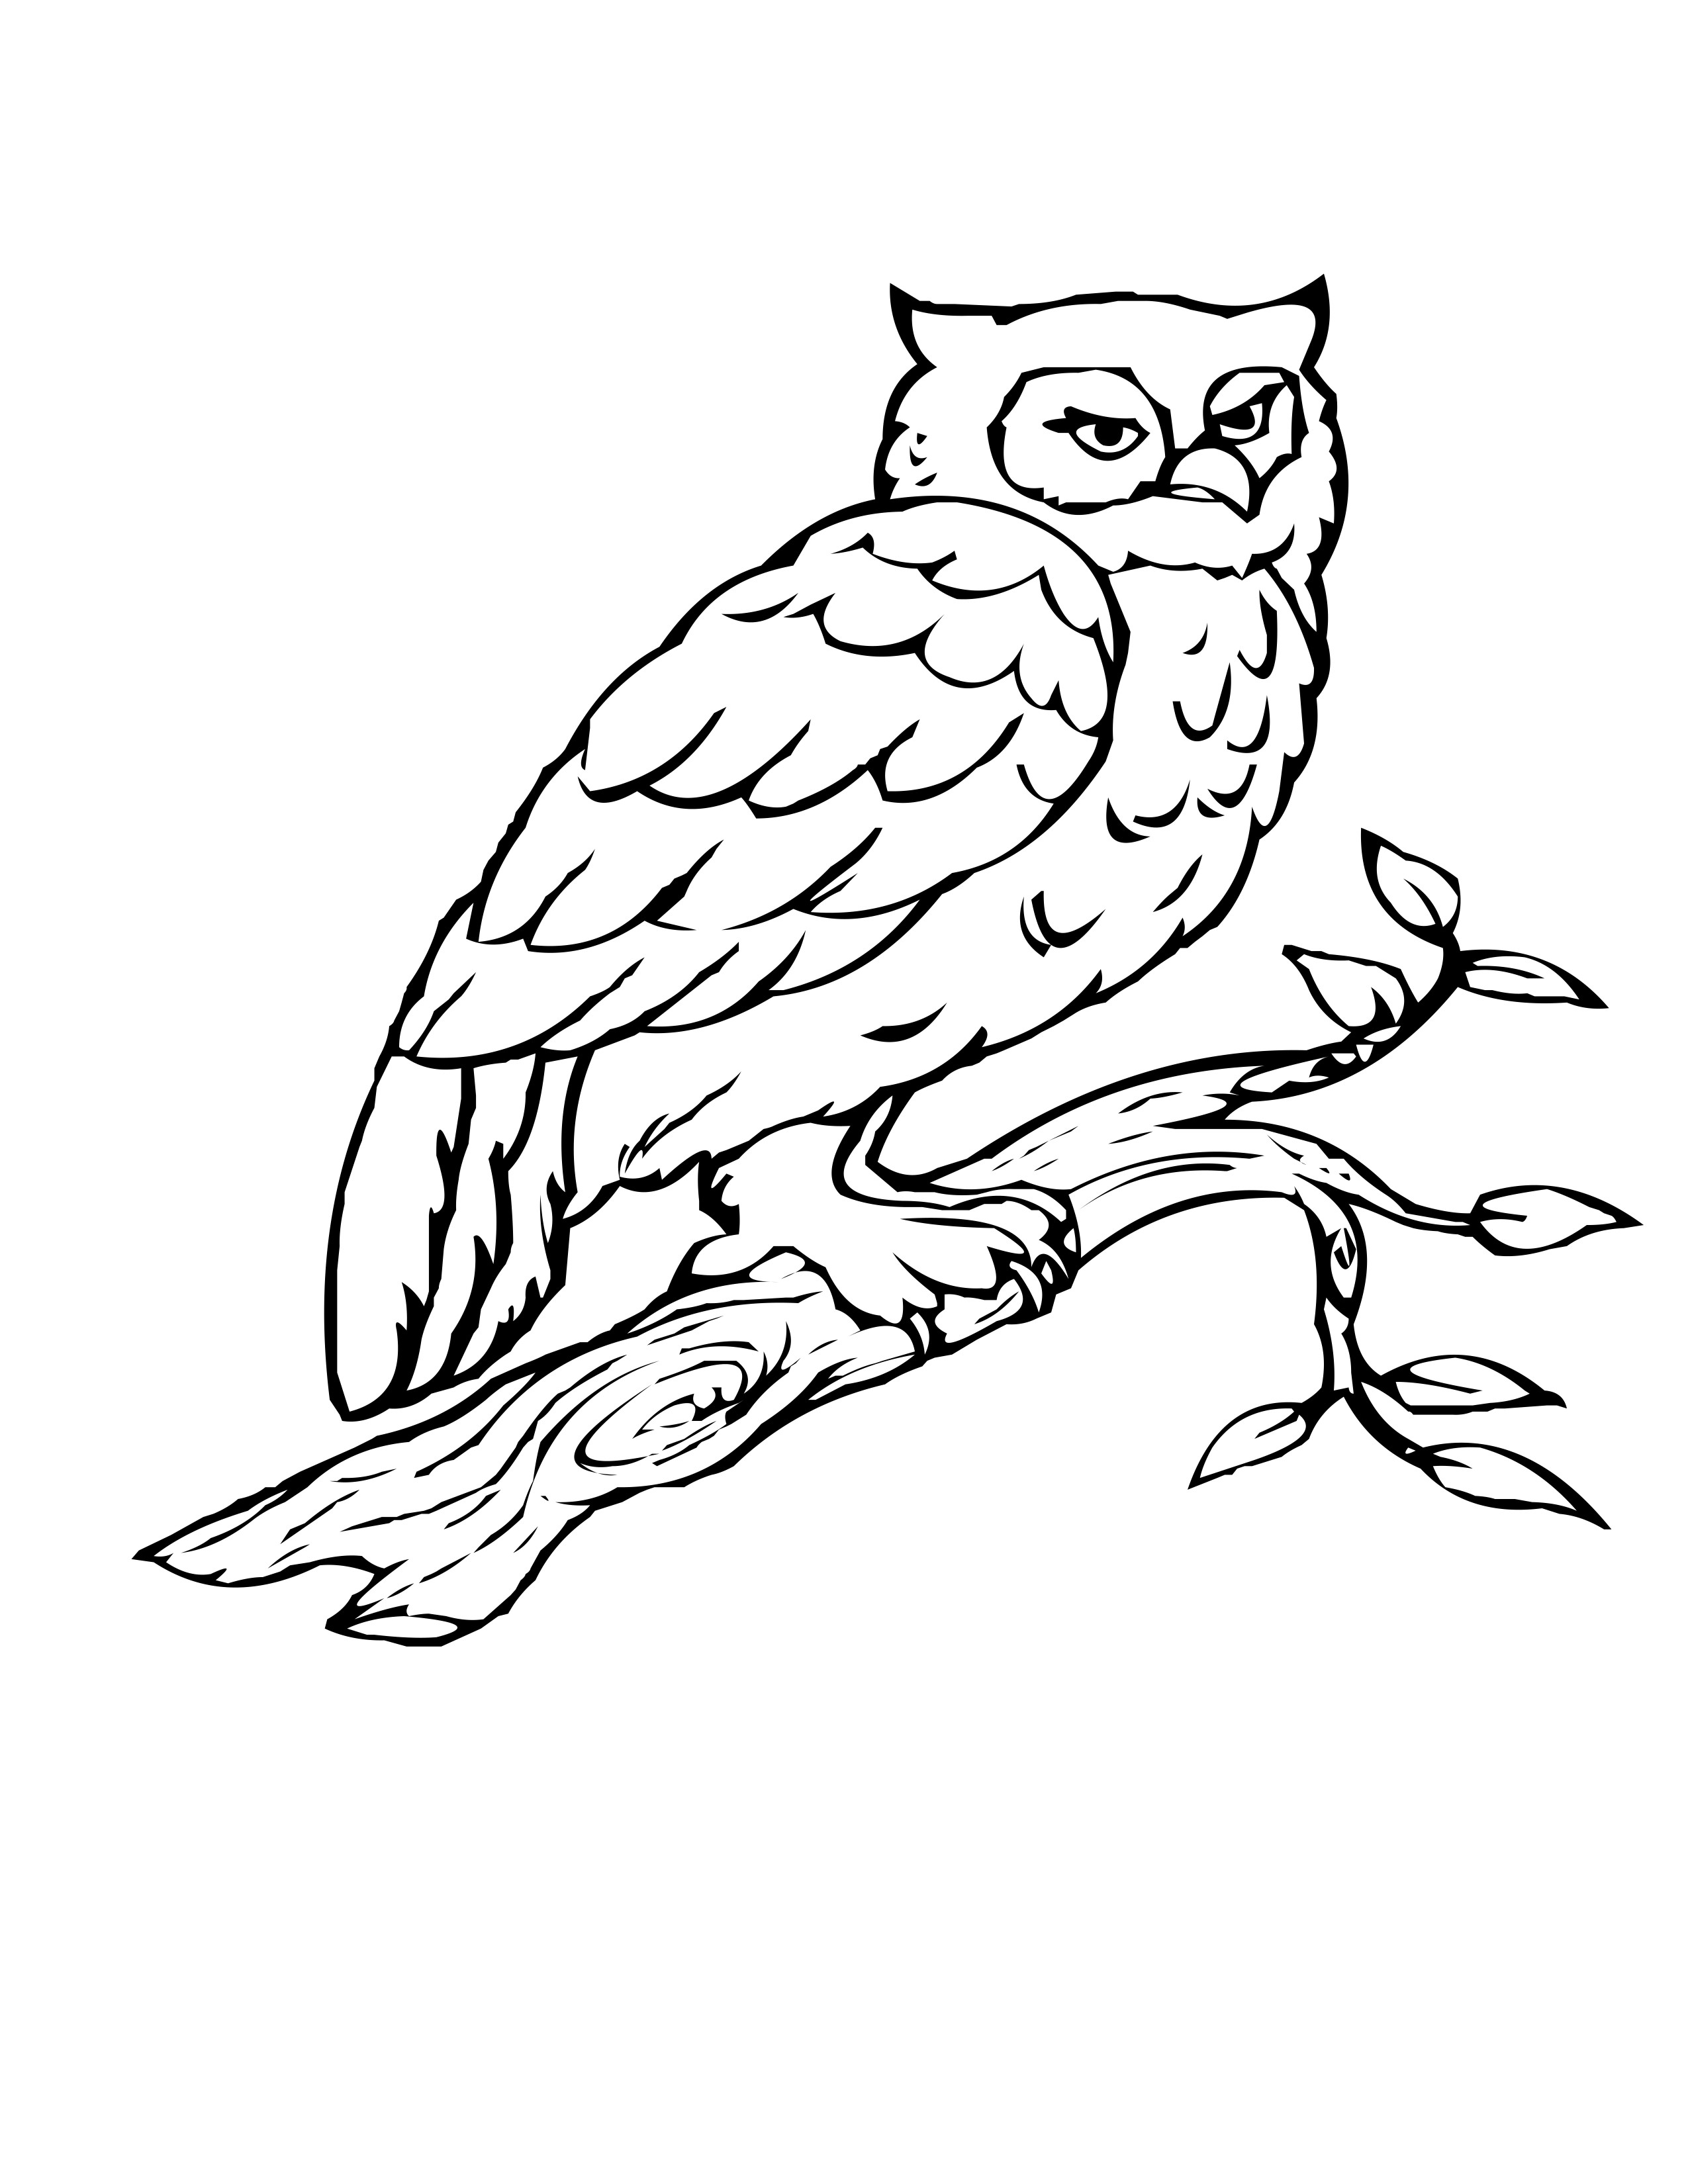 coloring pages of birds bird coloring pages coloring birds of pages